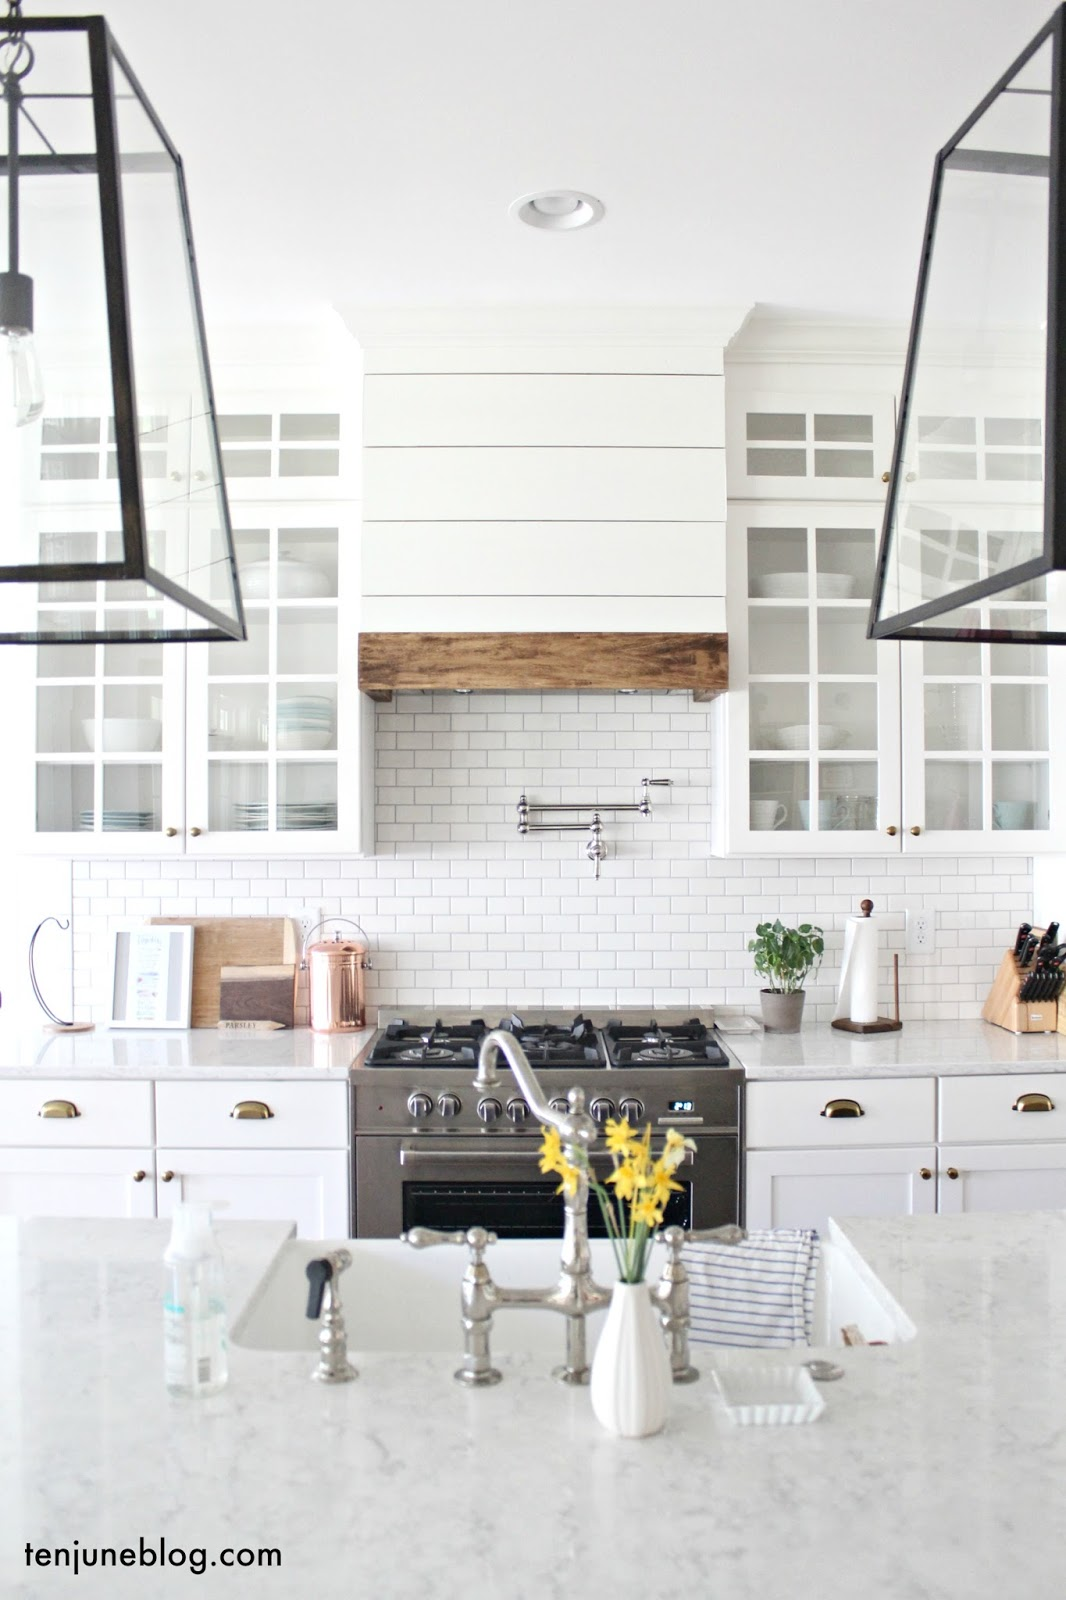 daily farmhouse hood so share questions kitchen thought june was hoods our on almost details about high vent shiplap many get ten time some i it